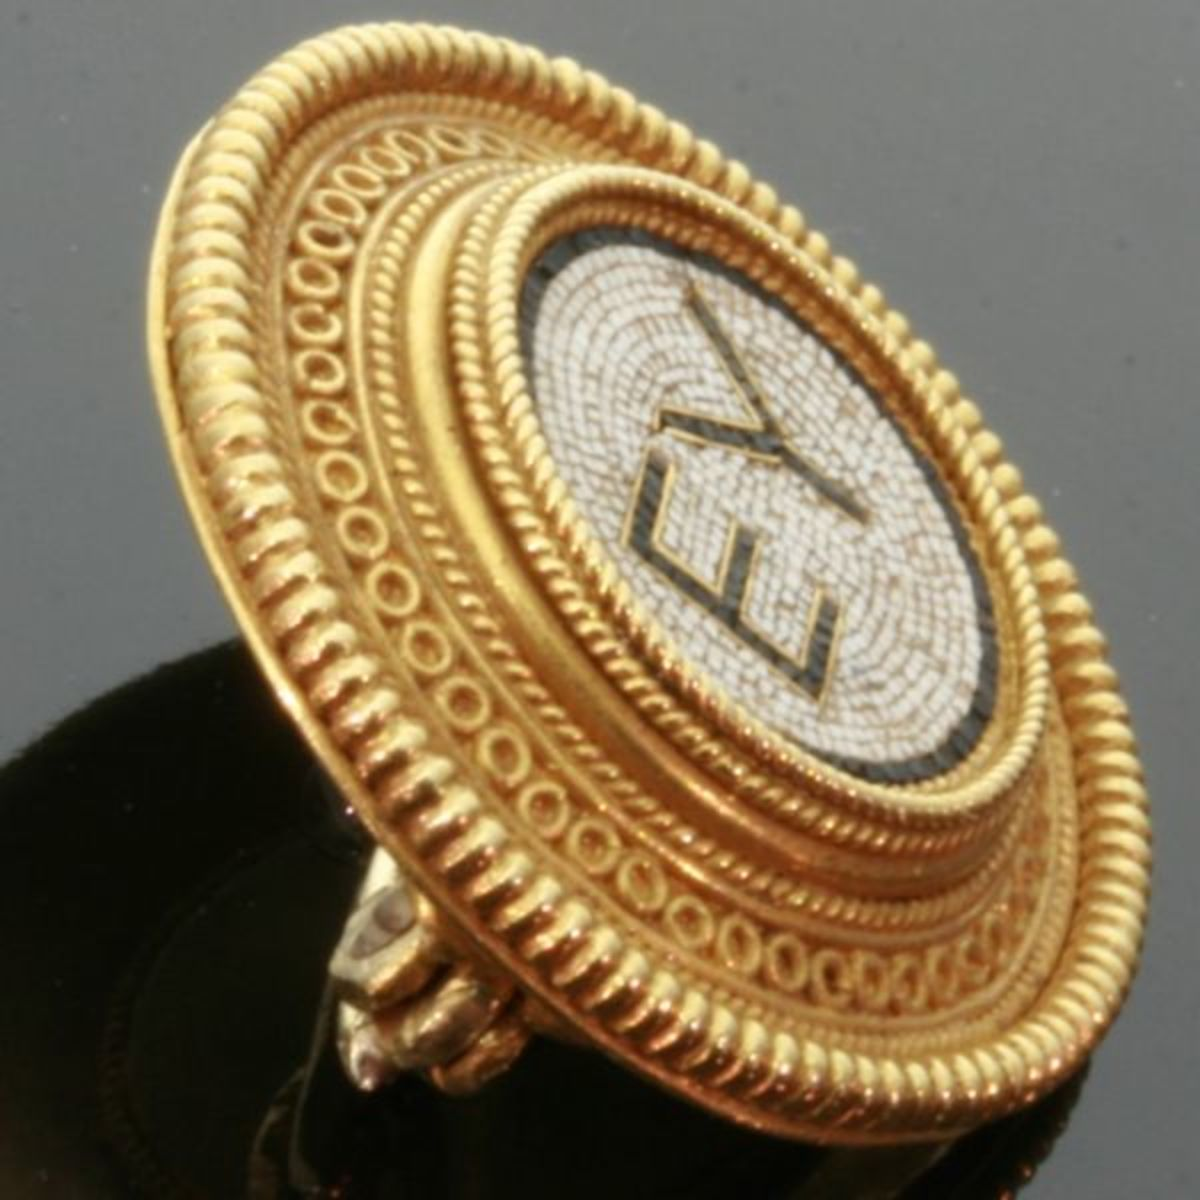 """micro mosiac jewelry by Castellani  1870 and 1880 in, what is called, the Castellani's """"Periodo Moderno"""", a period in which Castellani's master goldsmith and designer Michelangelo Caetani, was strongly focussed on designing micro mosaic jewelry with"""